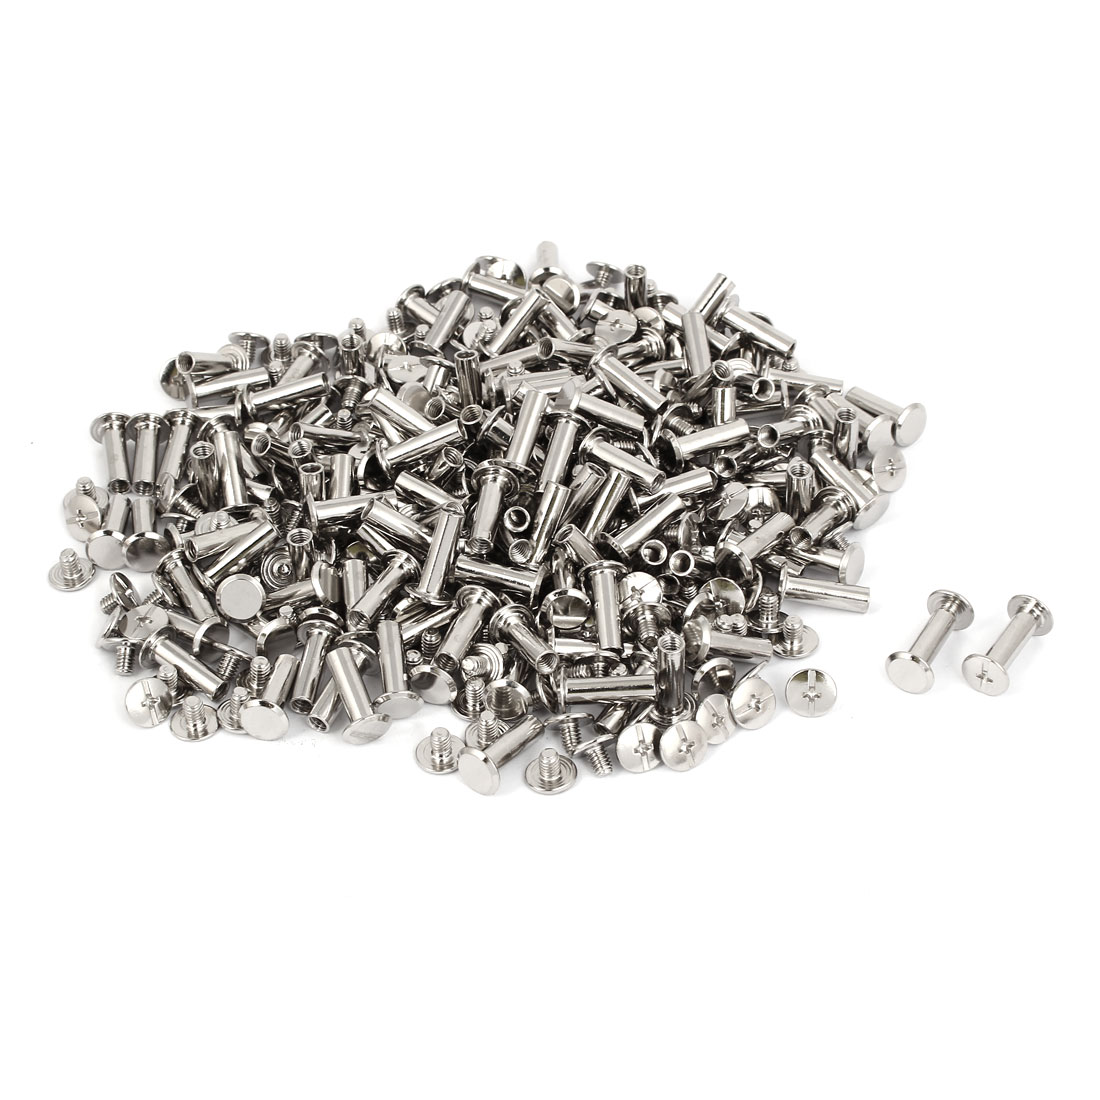 M5x16mm Binding Chicago Screw Post 200pcs for Photo Albums Scrapbook